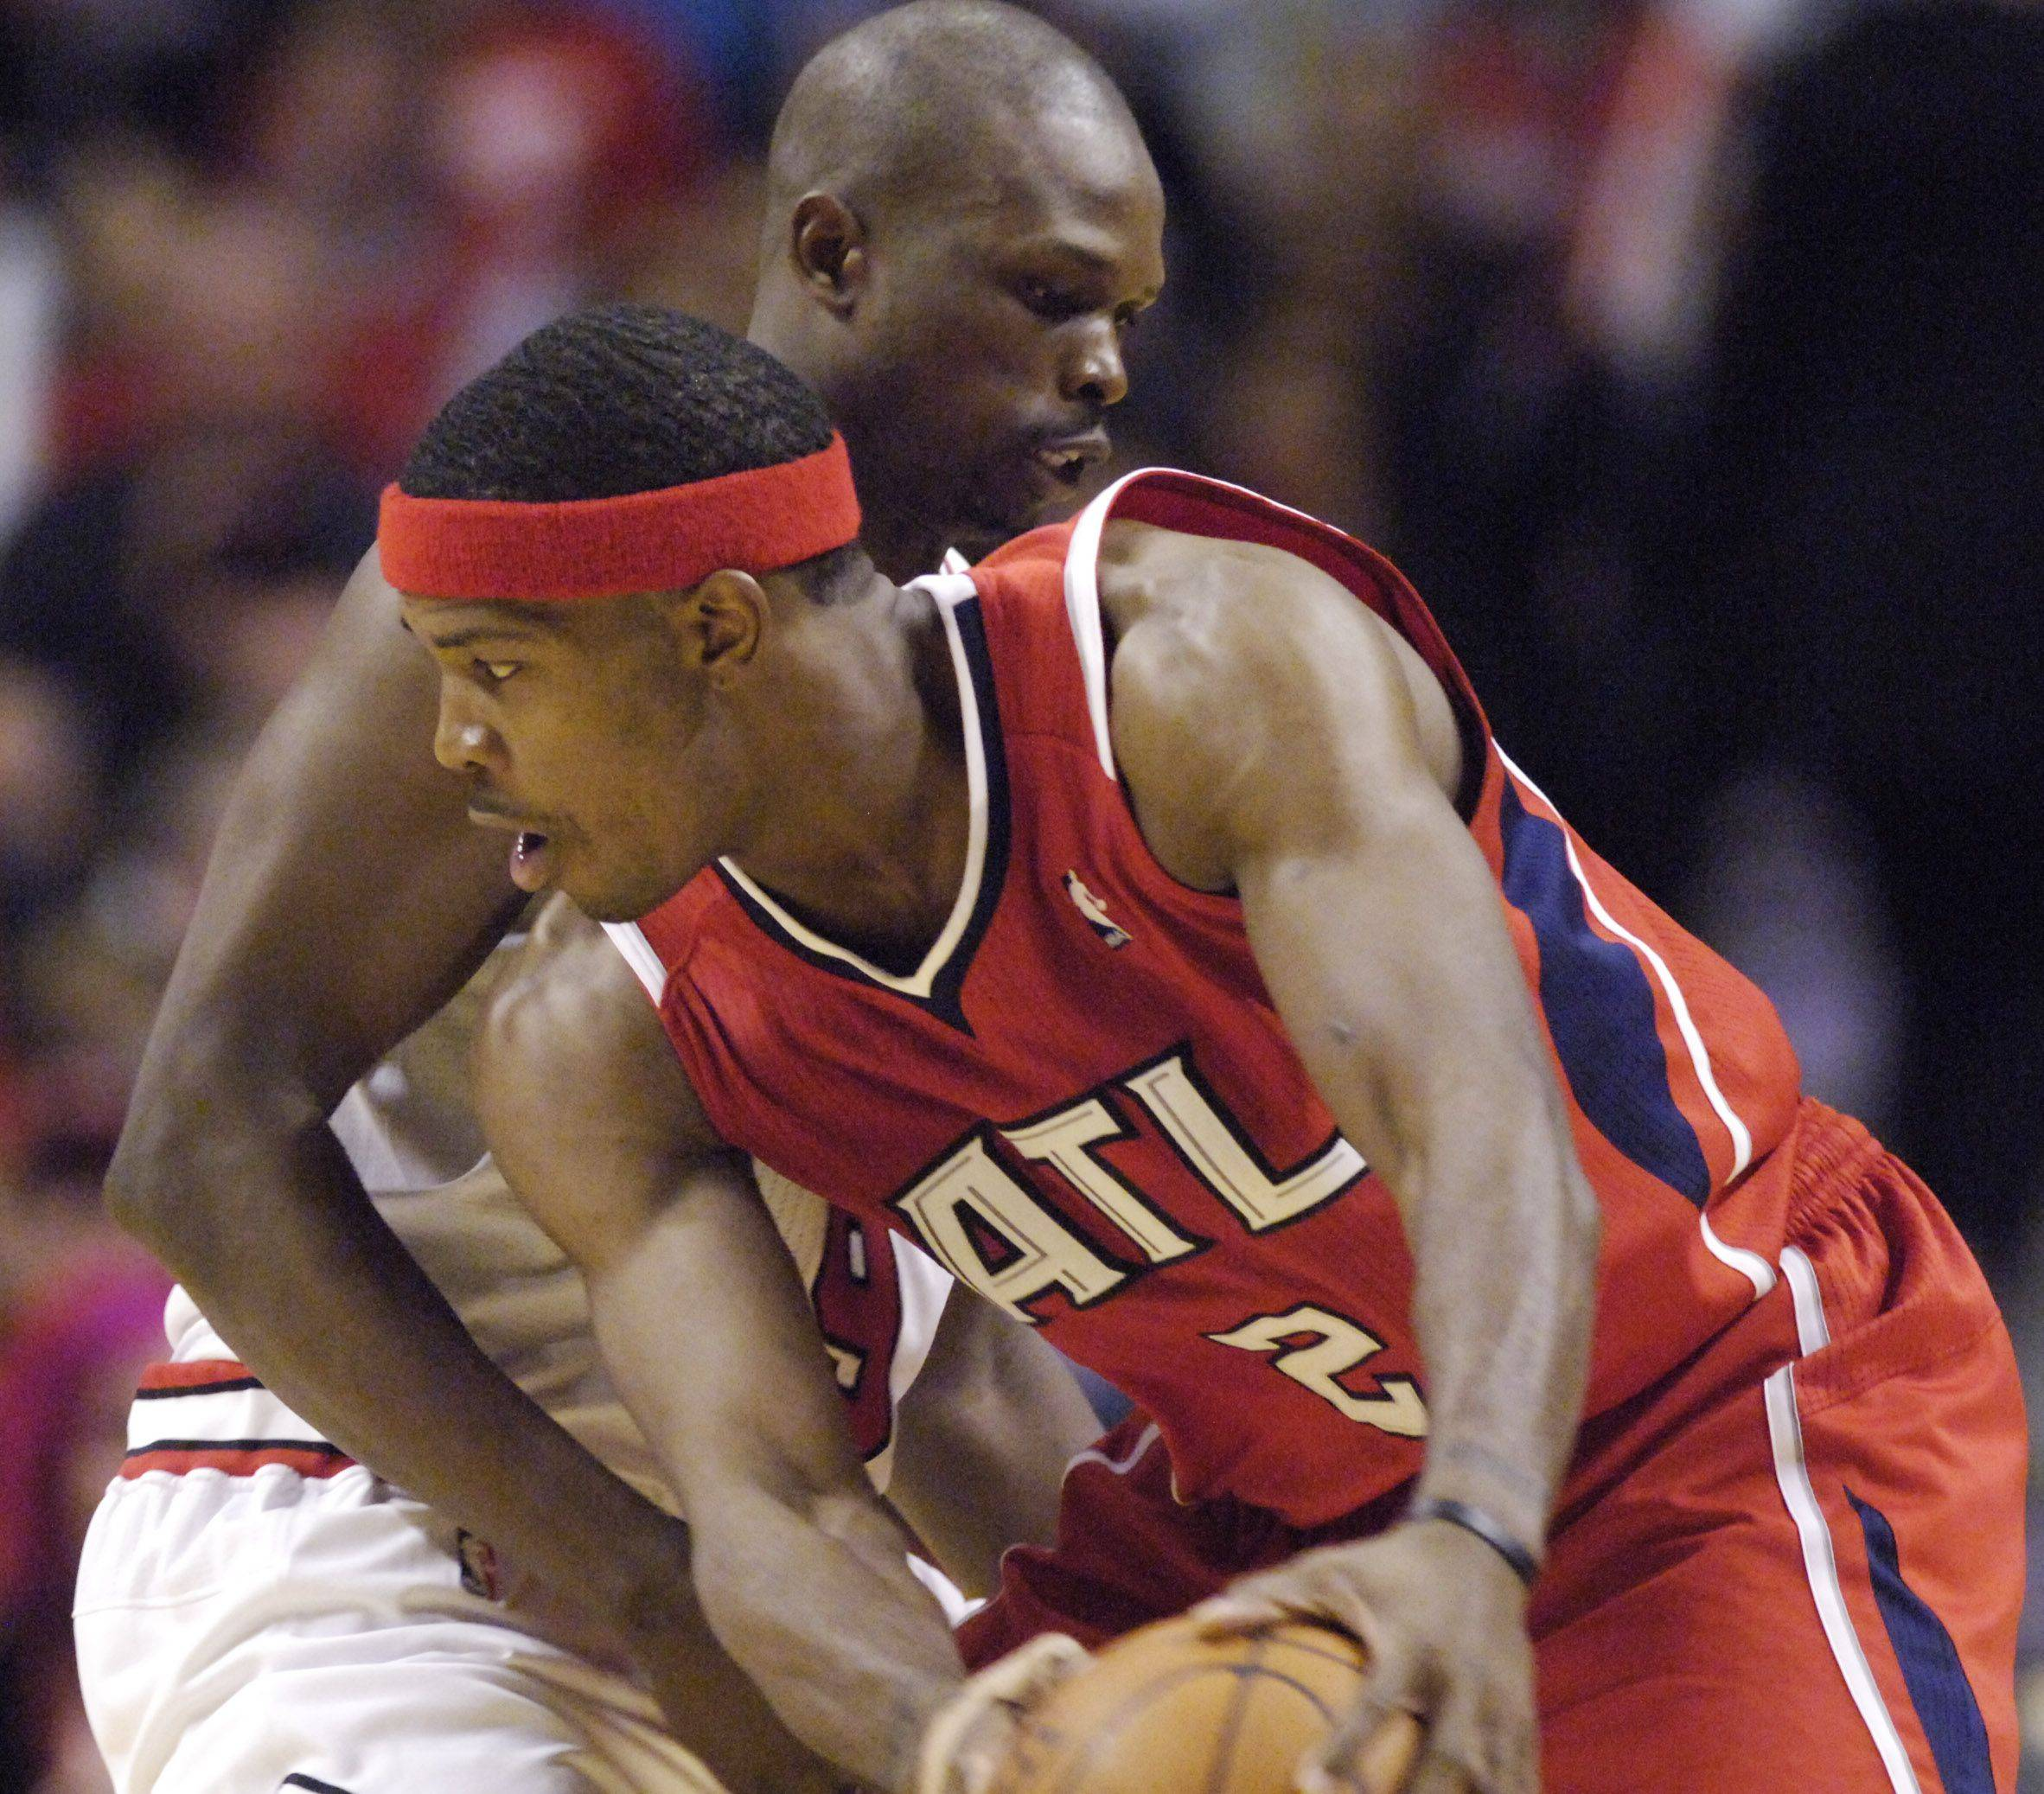 The Hawks' Joe Johnson tries to get around Luol Deng of the Bulls.